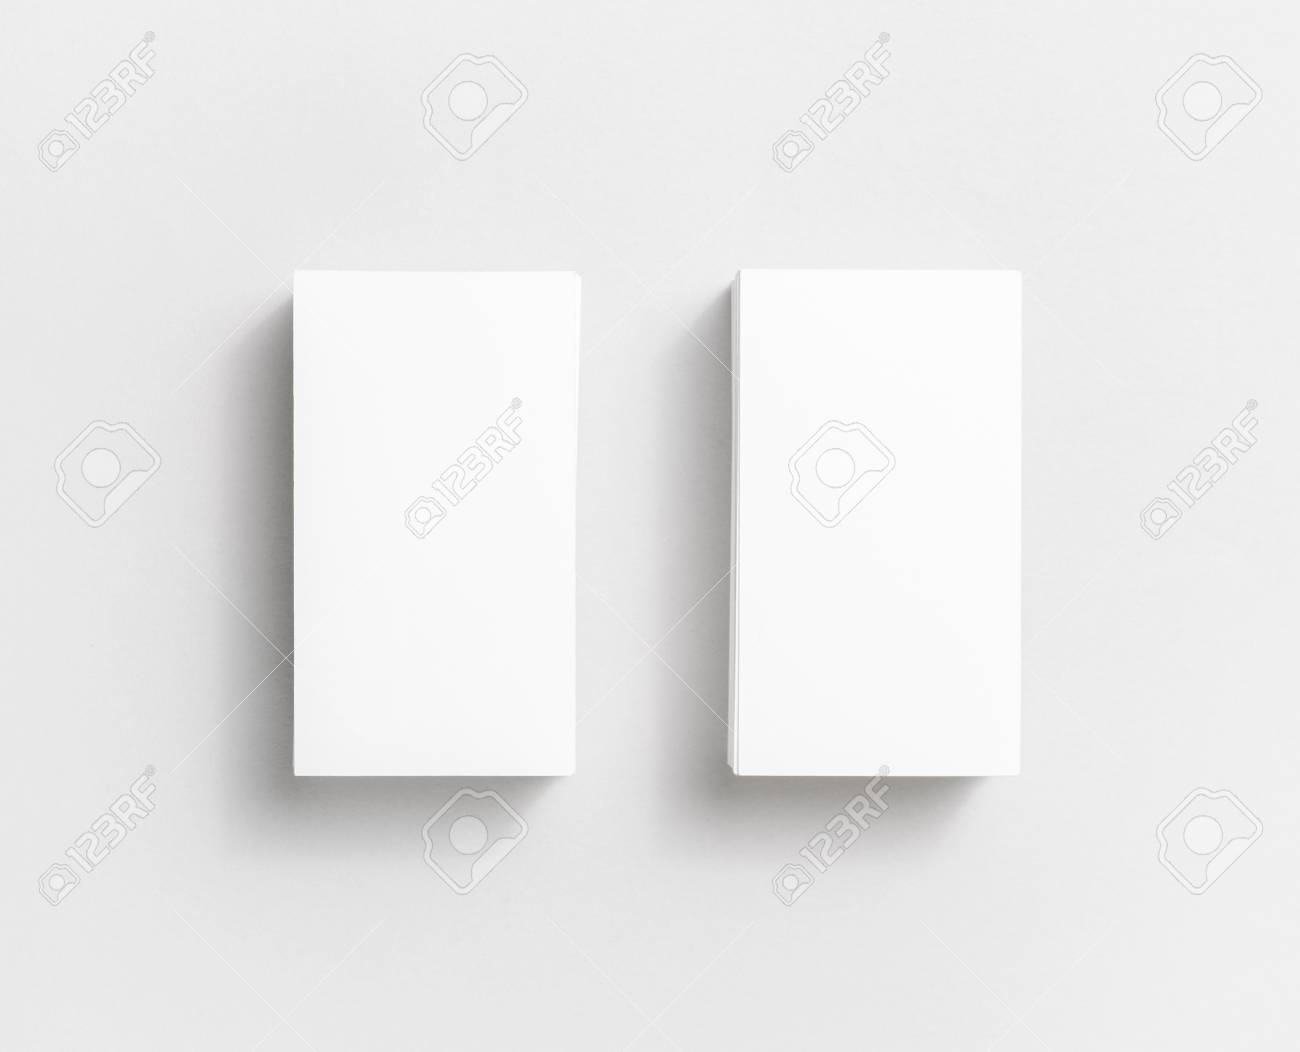 Photo Of Blank White Paper Business Cards On Paper Background ...